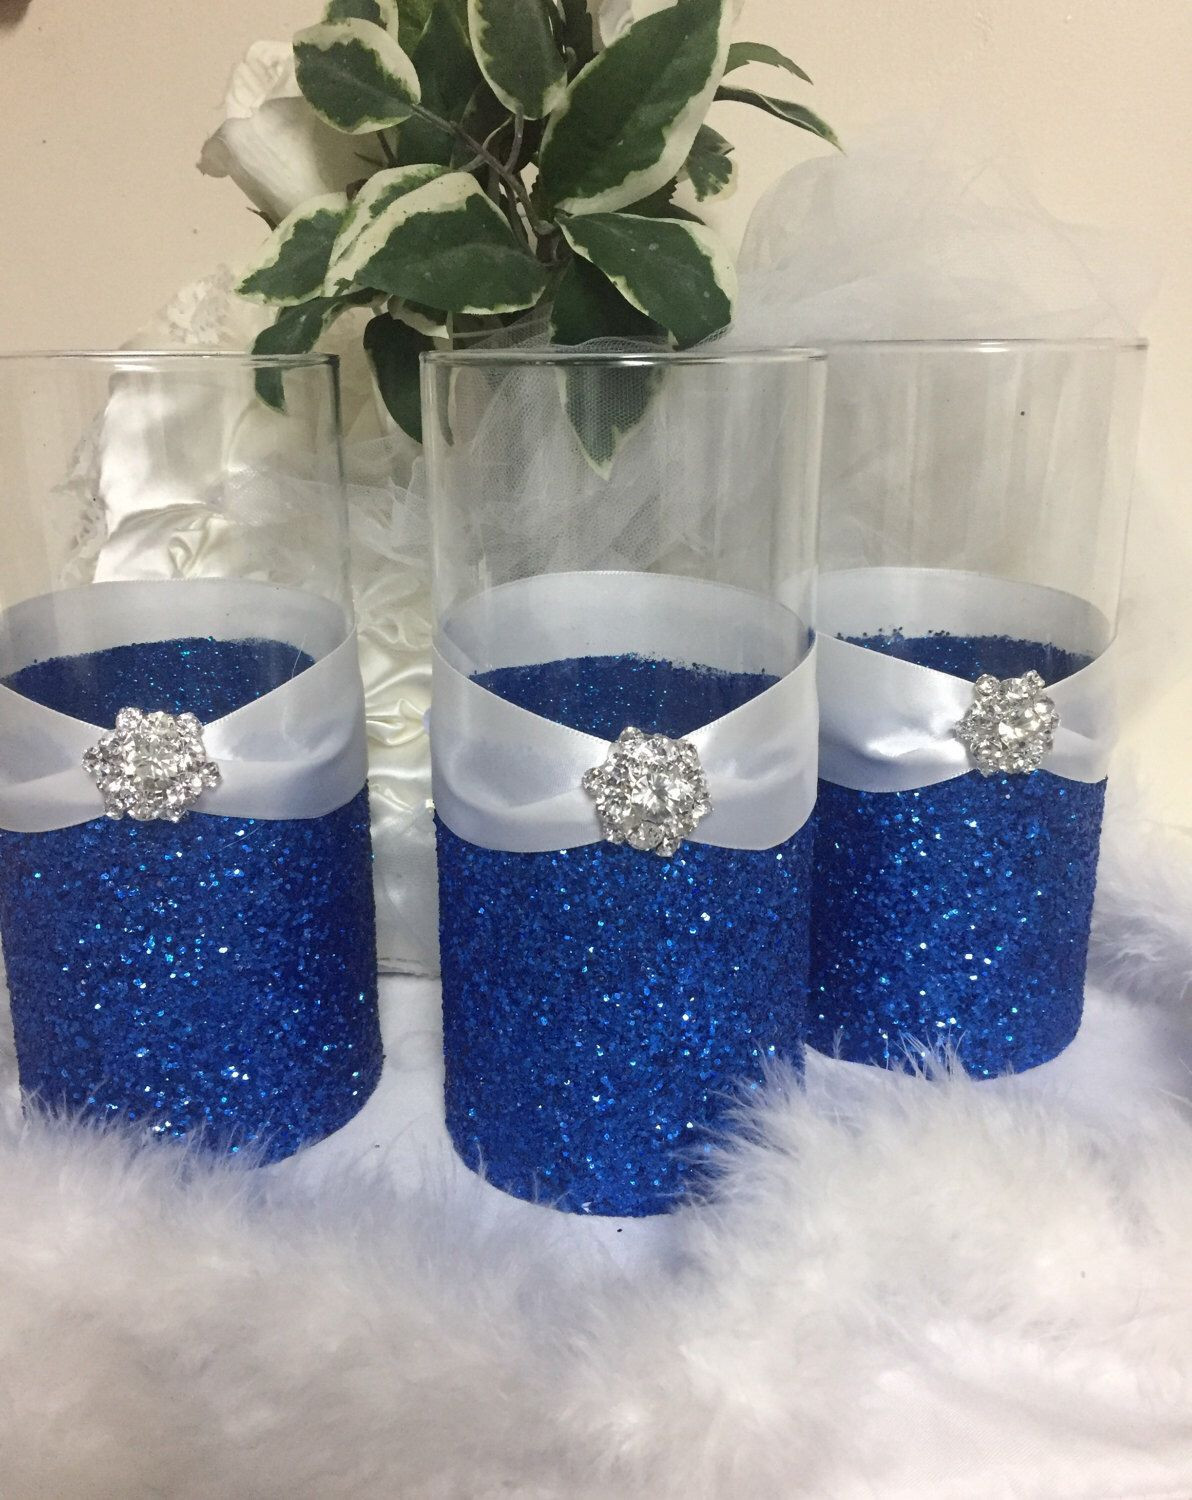 royal delft tulip vase of royal blue vases photograph wedding centerpiece glitter vase bridal regarding gallery of royal blue vases